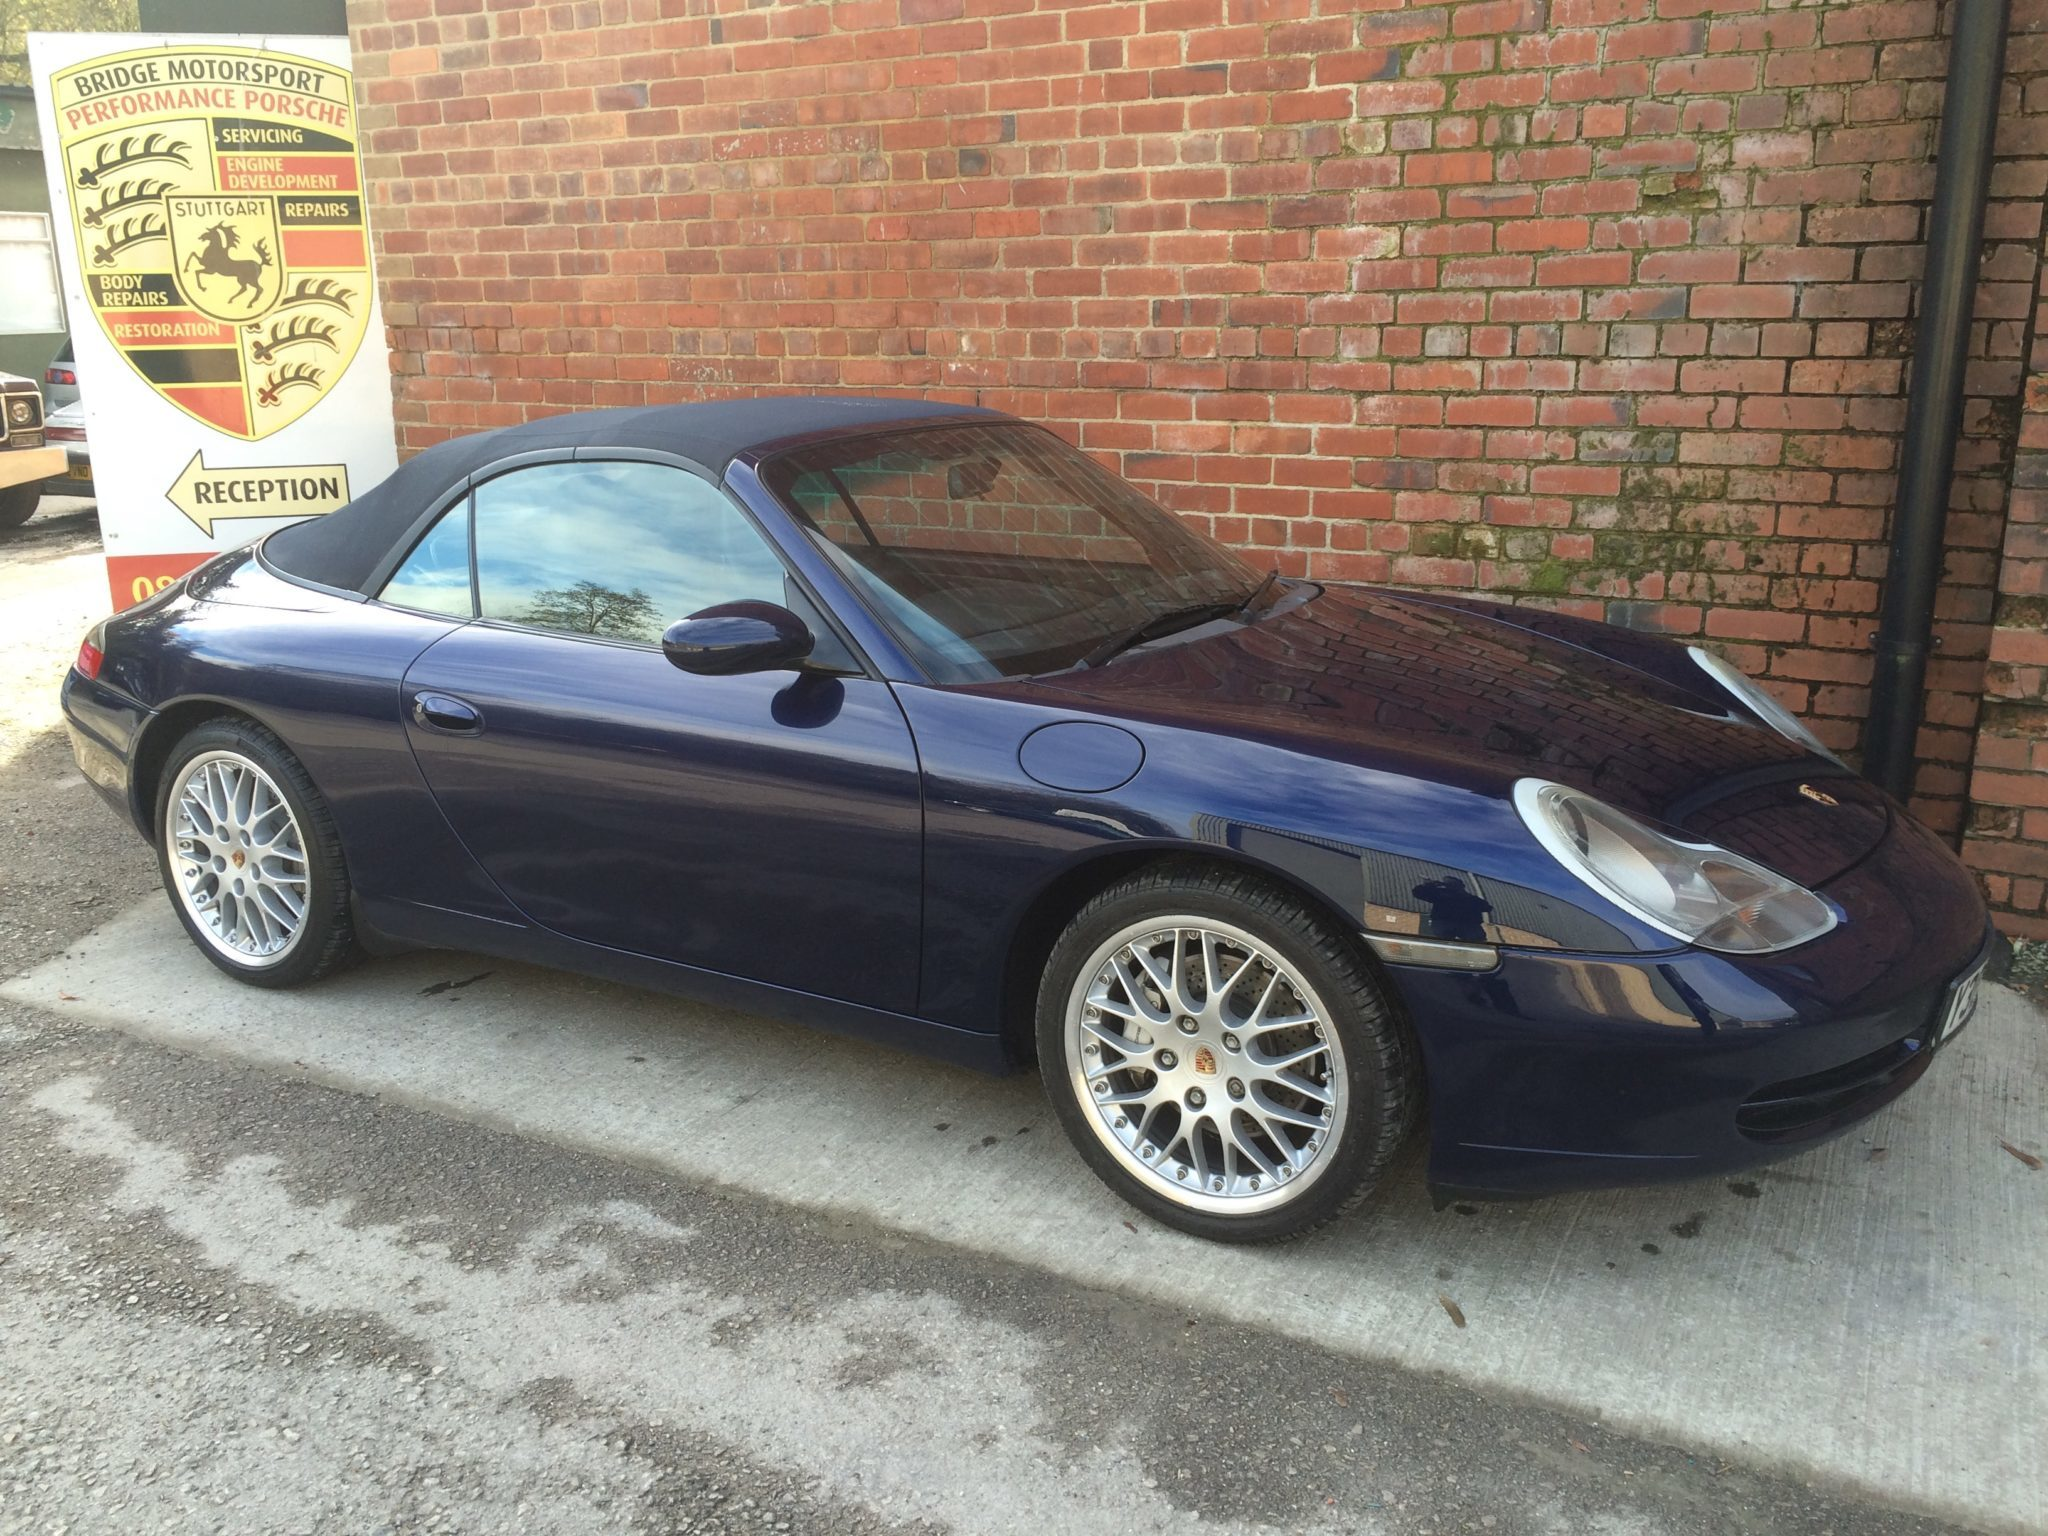 Micks Immaculate 996